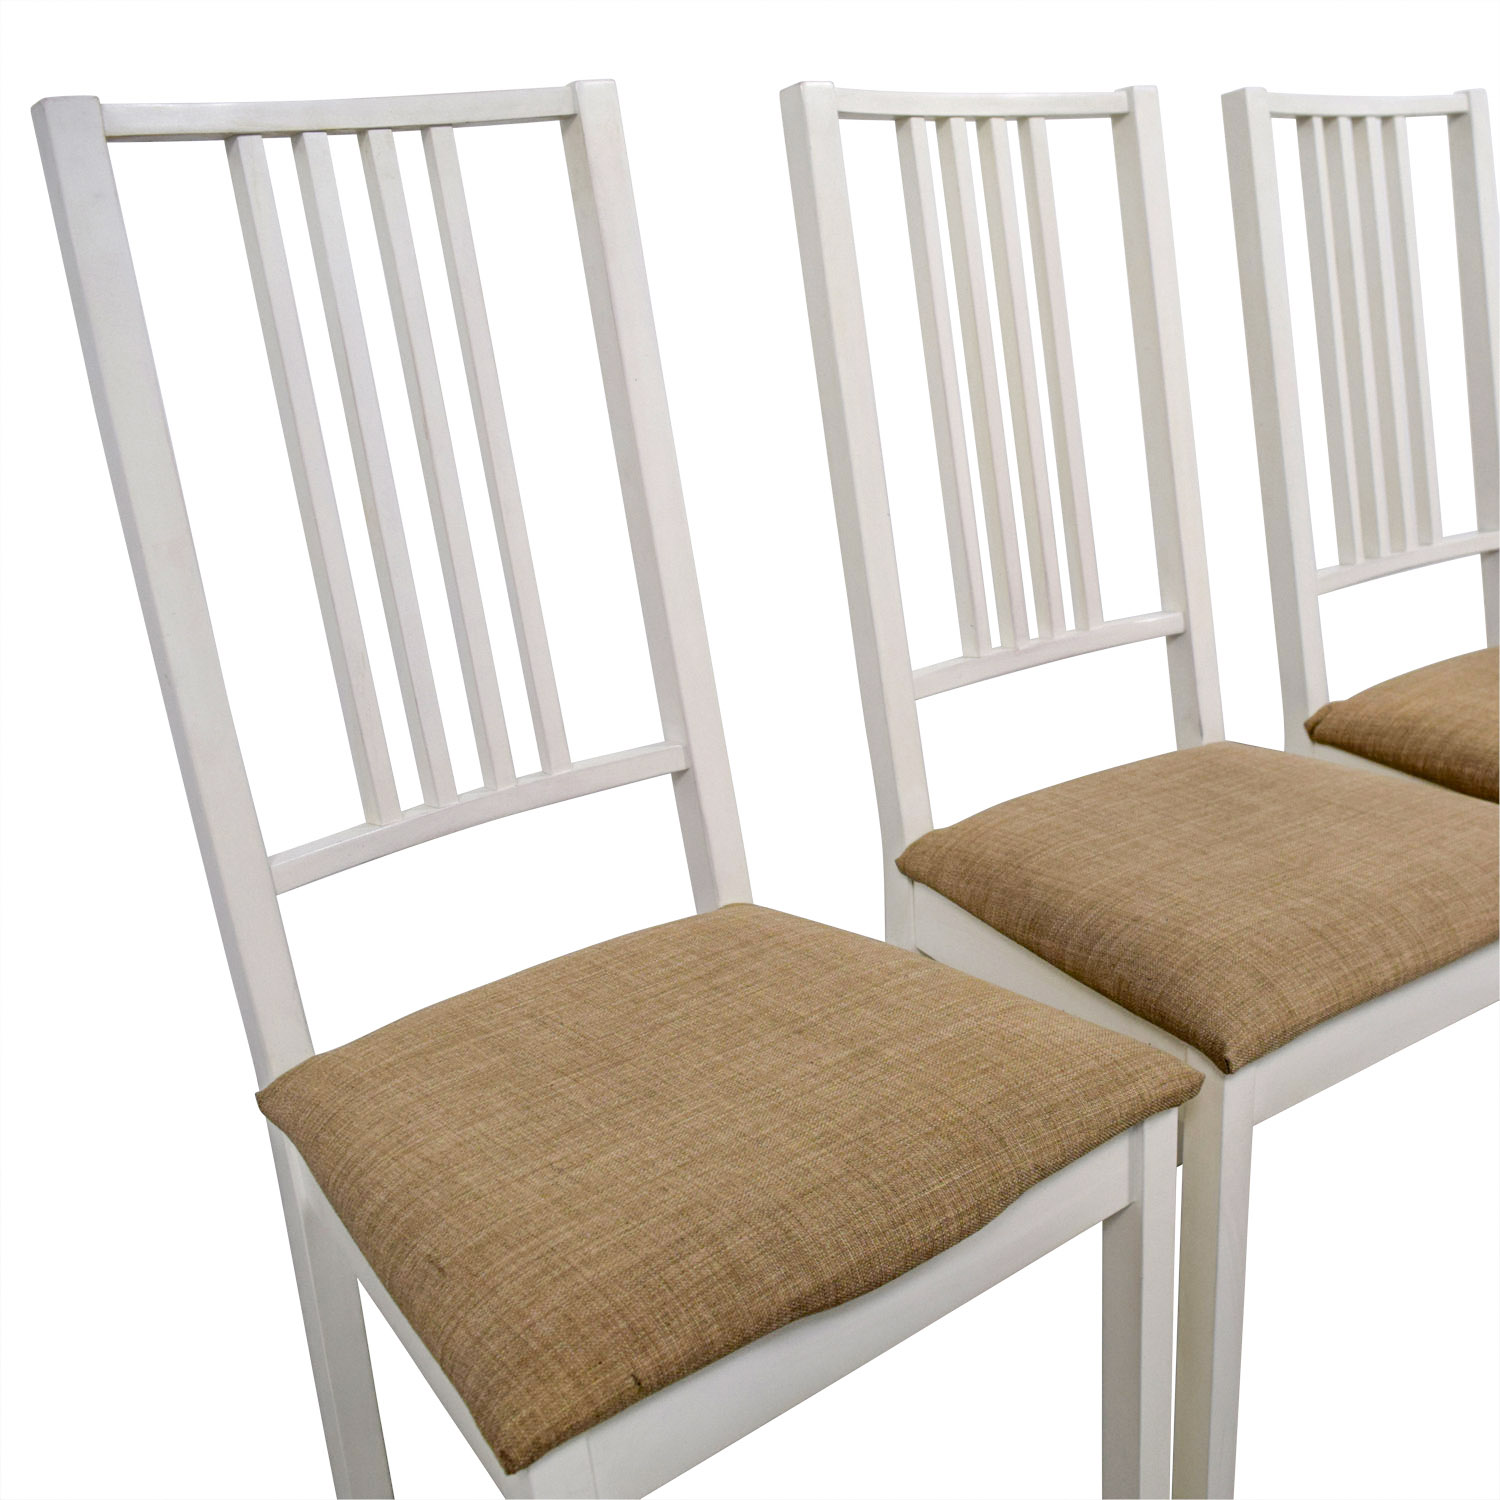 82 Off Ikea Ikea White With Tan Upholstered Dining Chairs Chairs